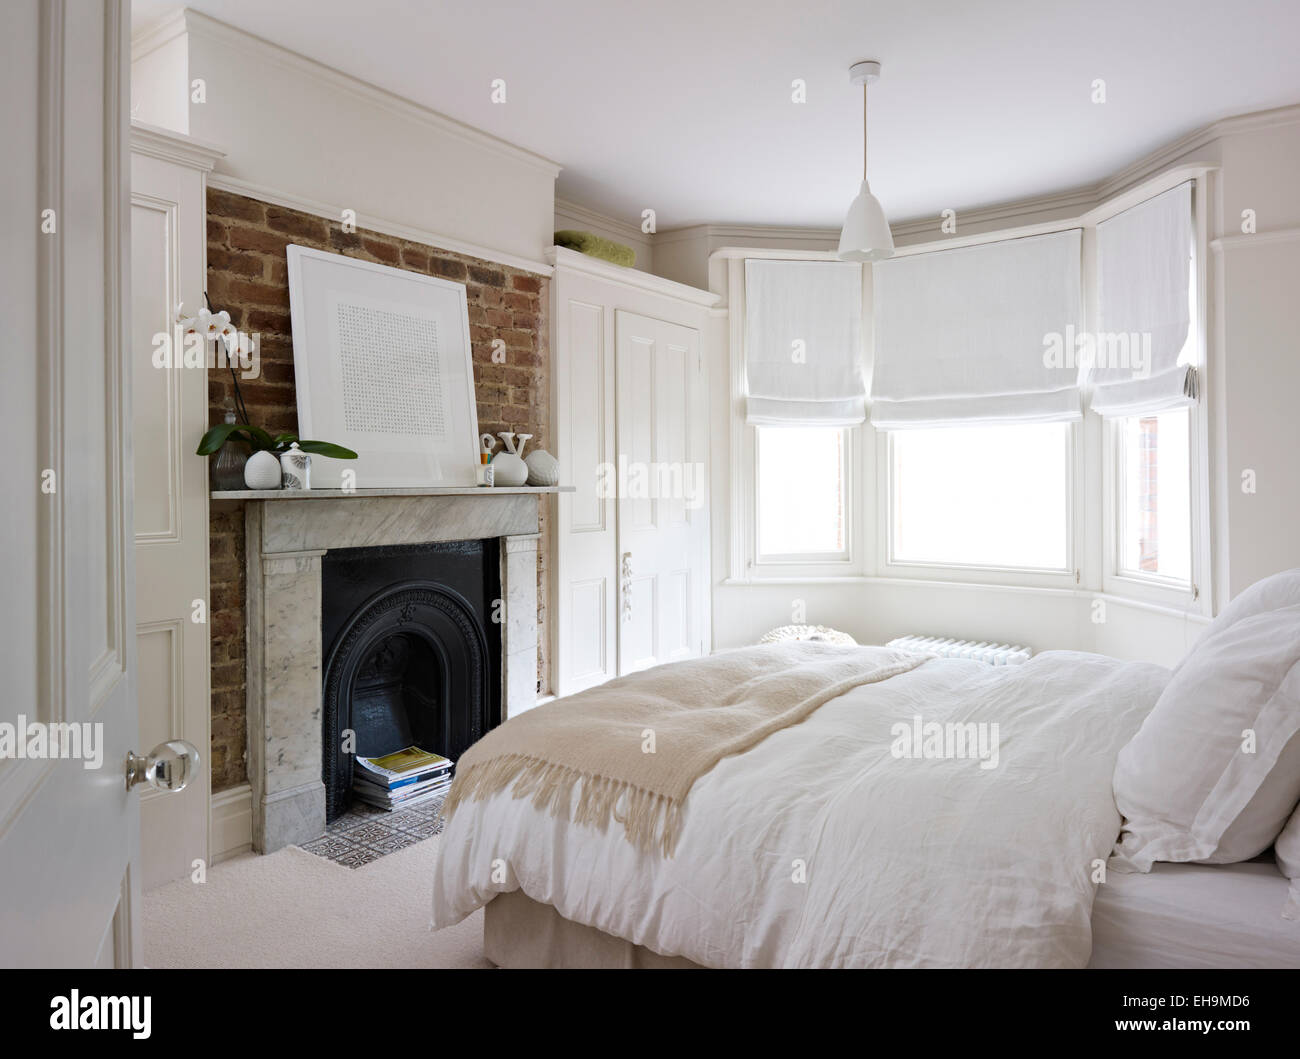 Bedroom With Bed Fireplace And Bay Window With Roman Blinds Residential House Port